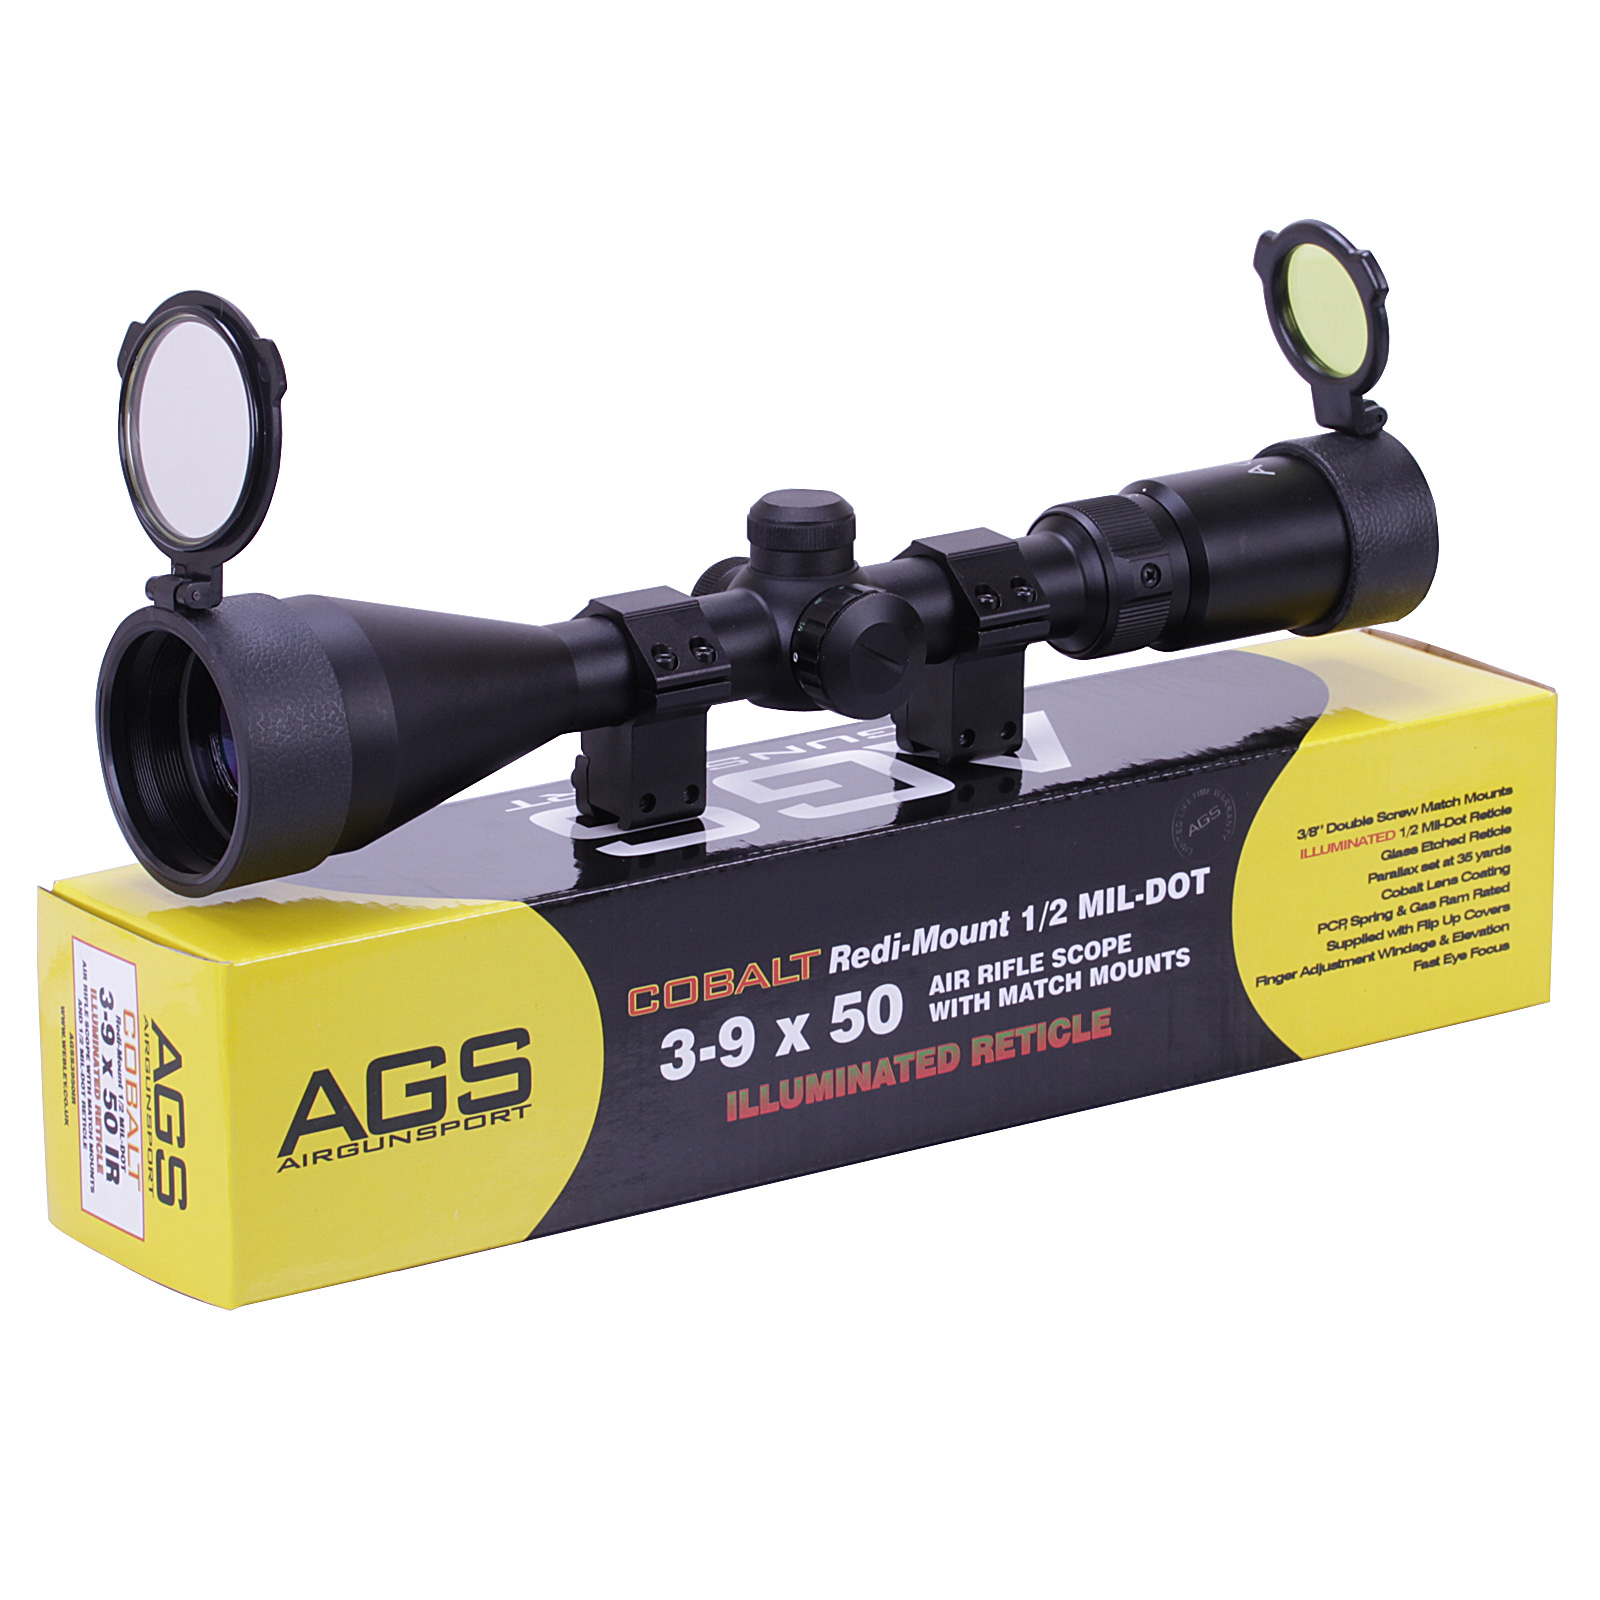 Details about AGS Cobalt 3-9x50 Illuminated Mil Dot Air Rifle Scope  Telescopic Sight + MOUNTS